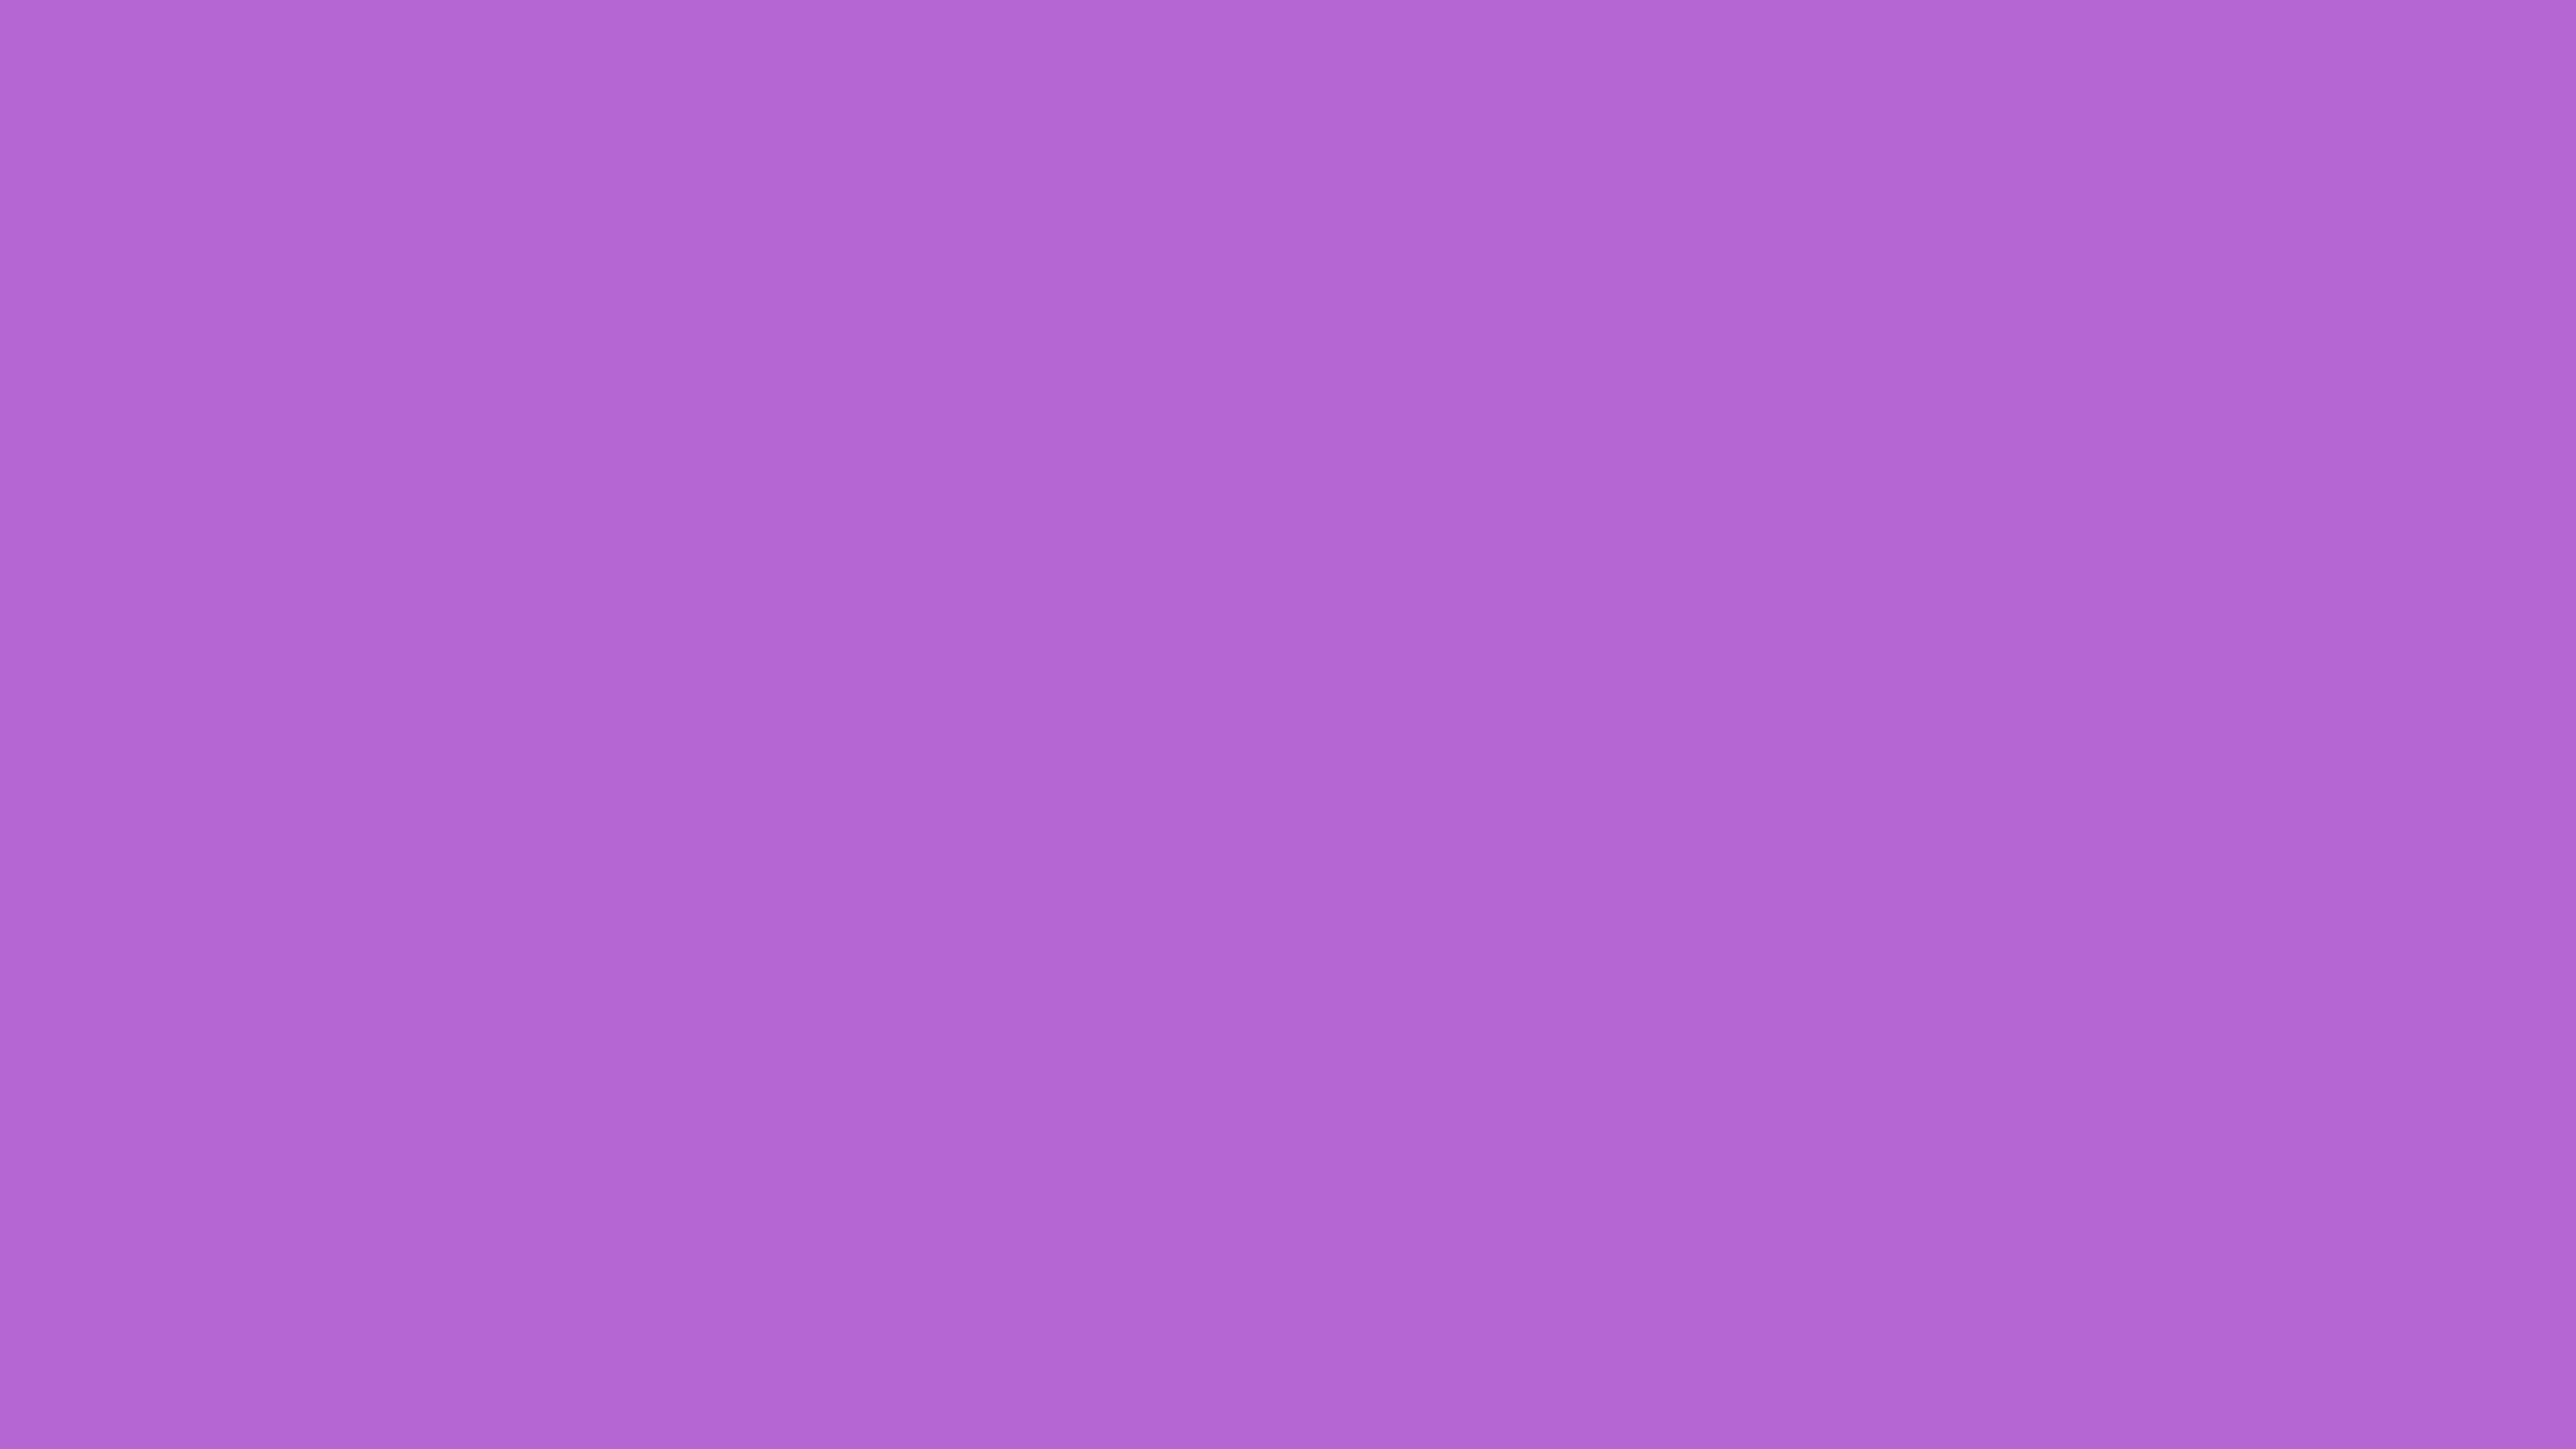 3840x2160 Rich Lilac Solid Color Background